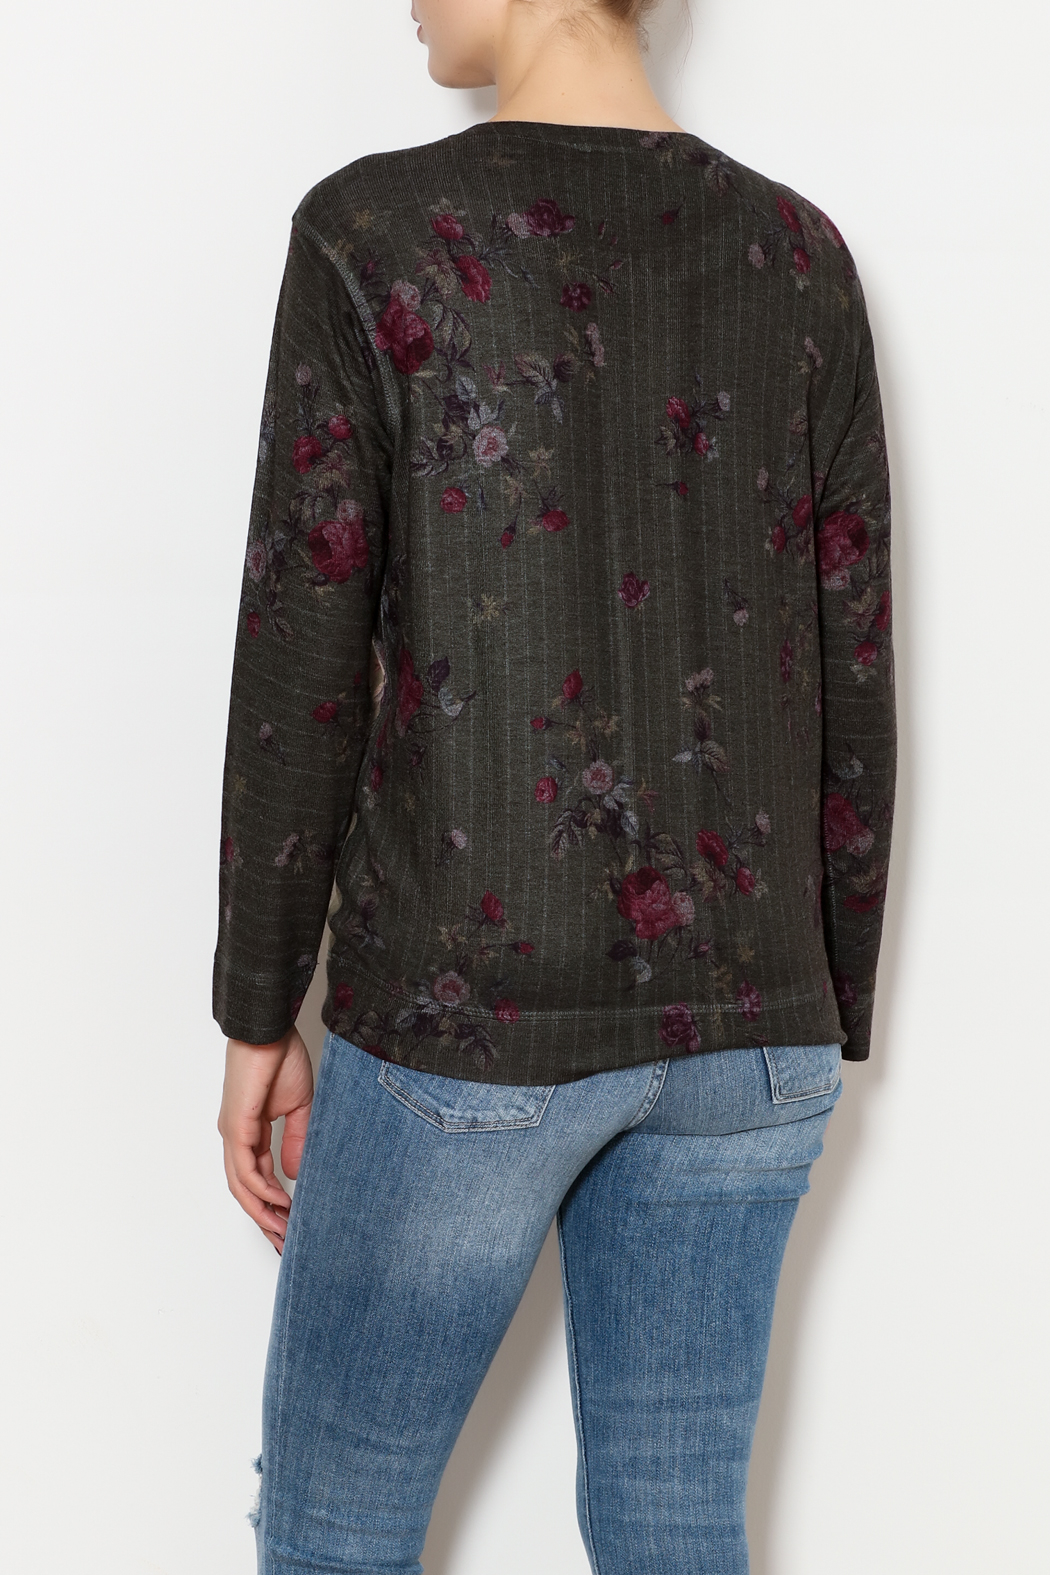 Nally & Millie Floral sweater - Back Cropped Image